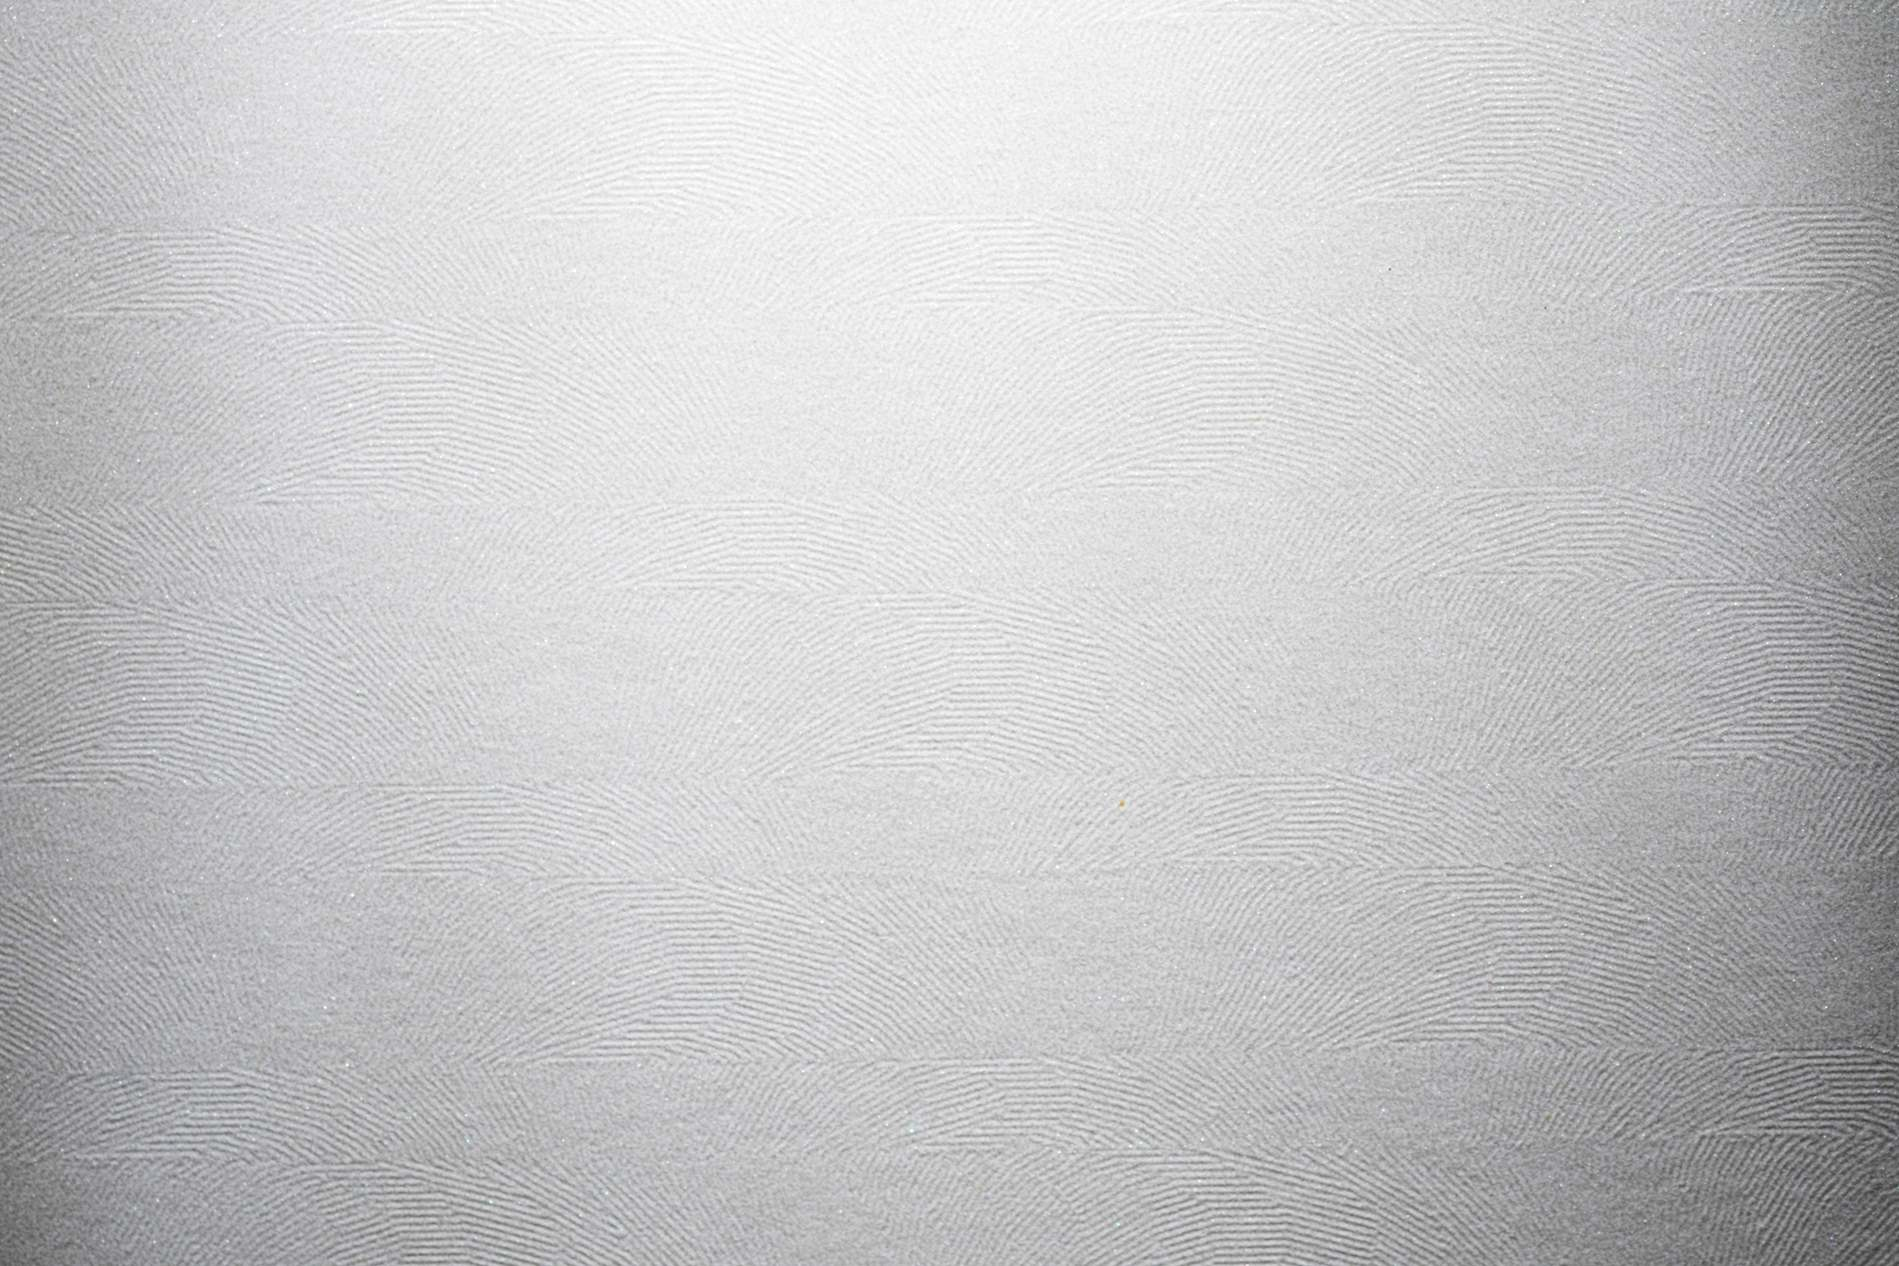 Clean White Textured Paper